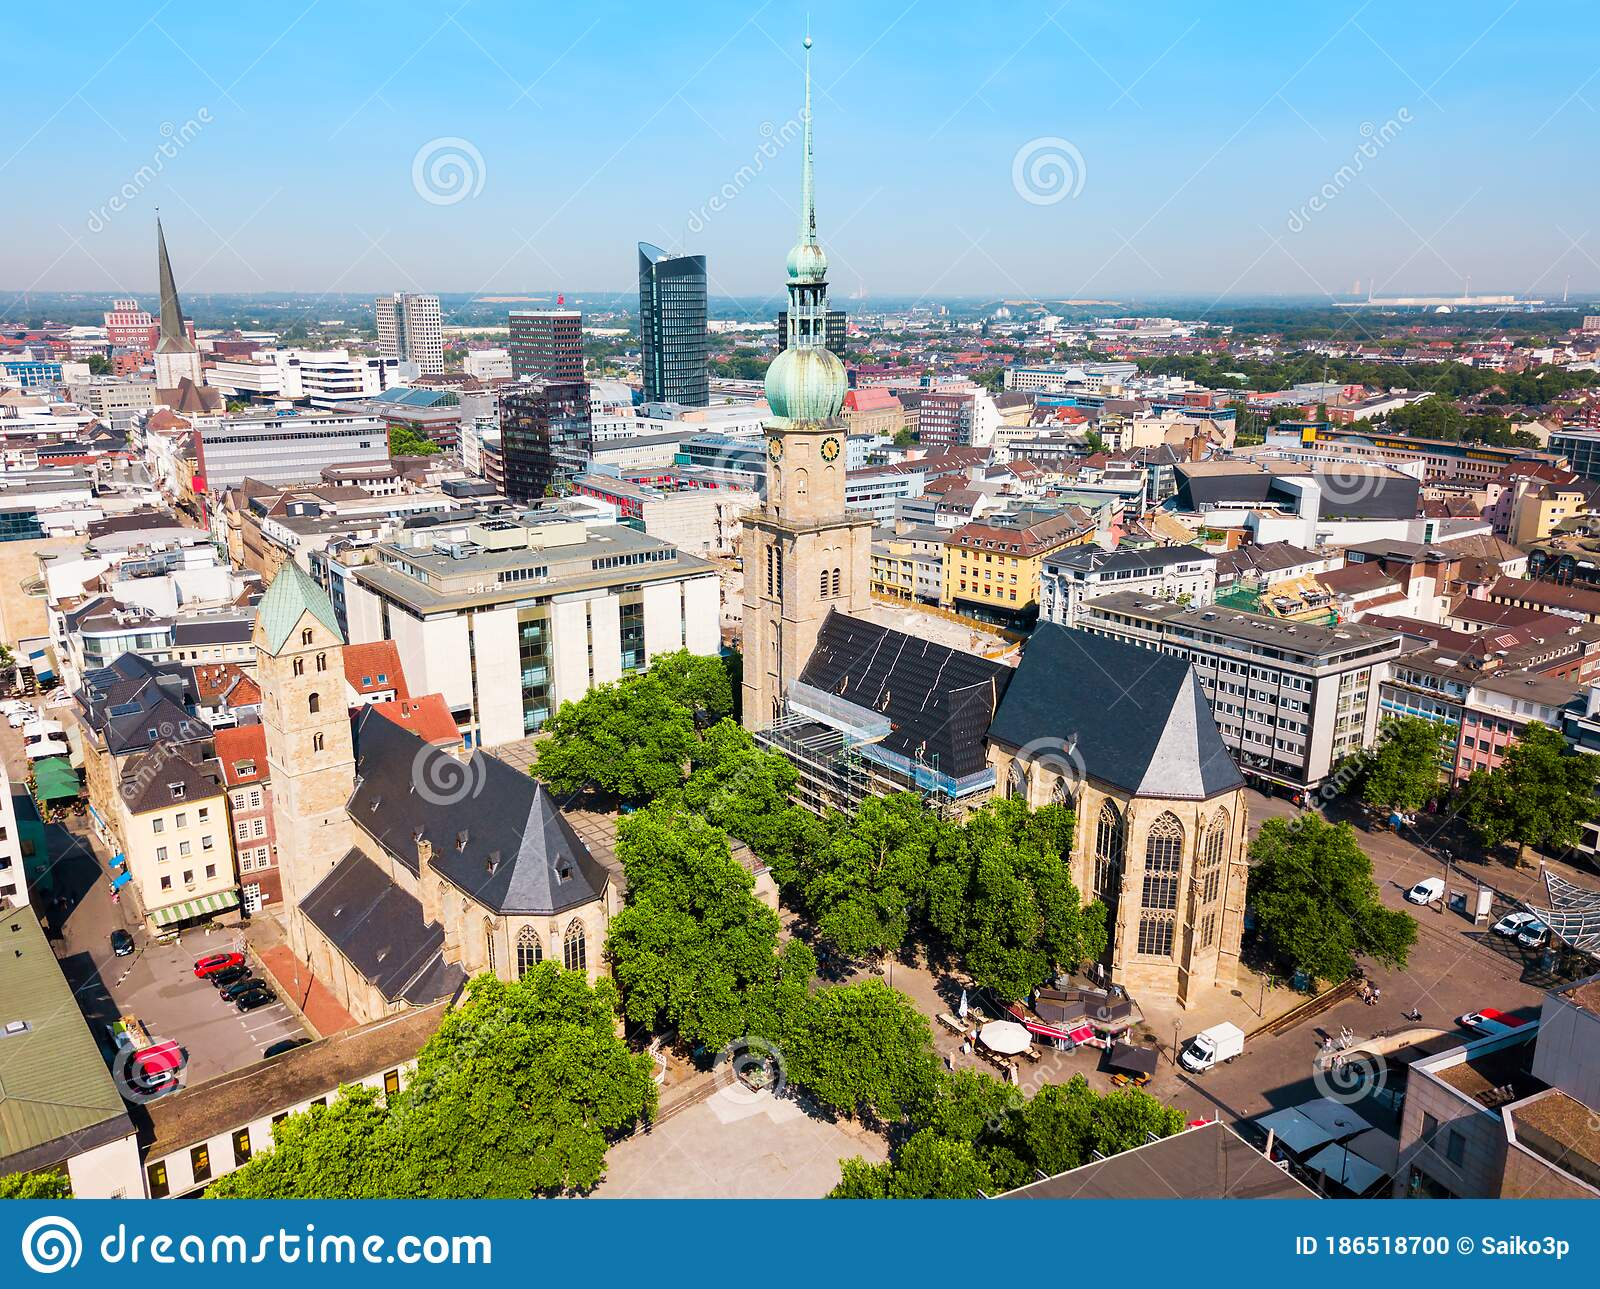 Dortmund City Centre Germany Photos - Free & Royalty-Free Stock Photos from  Dreamstime